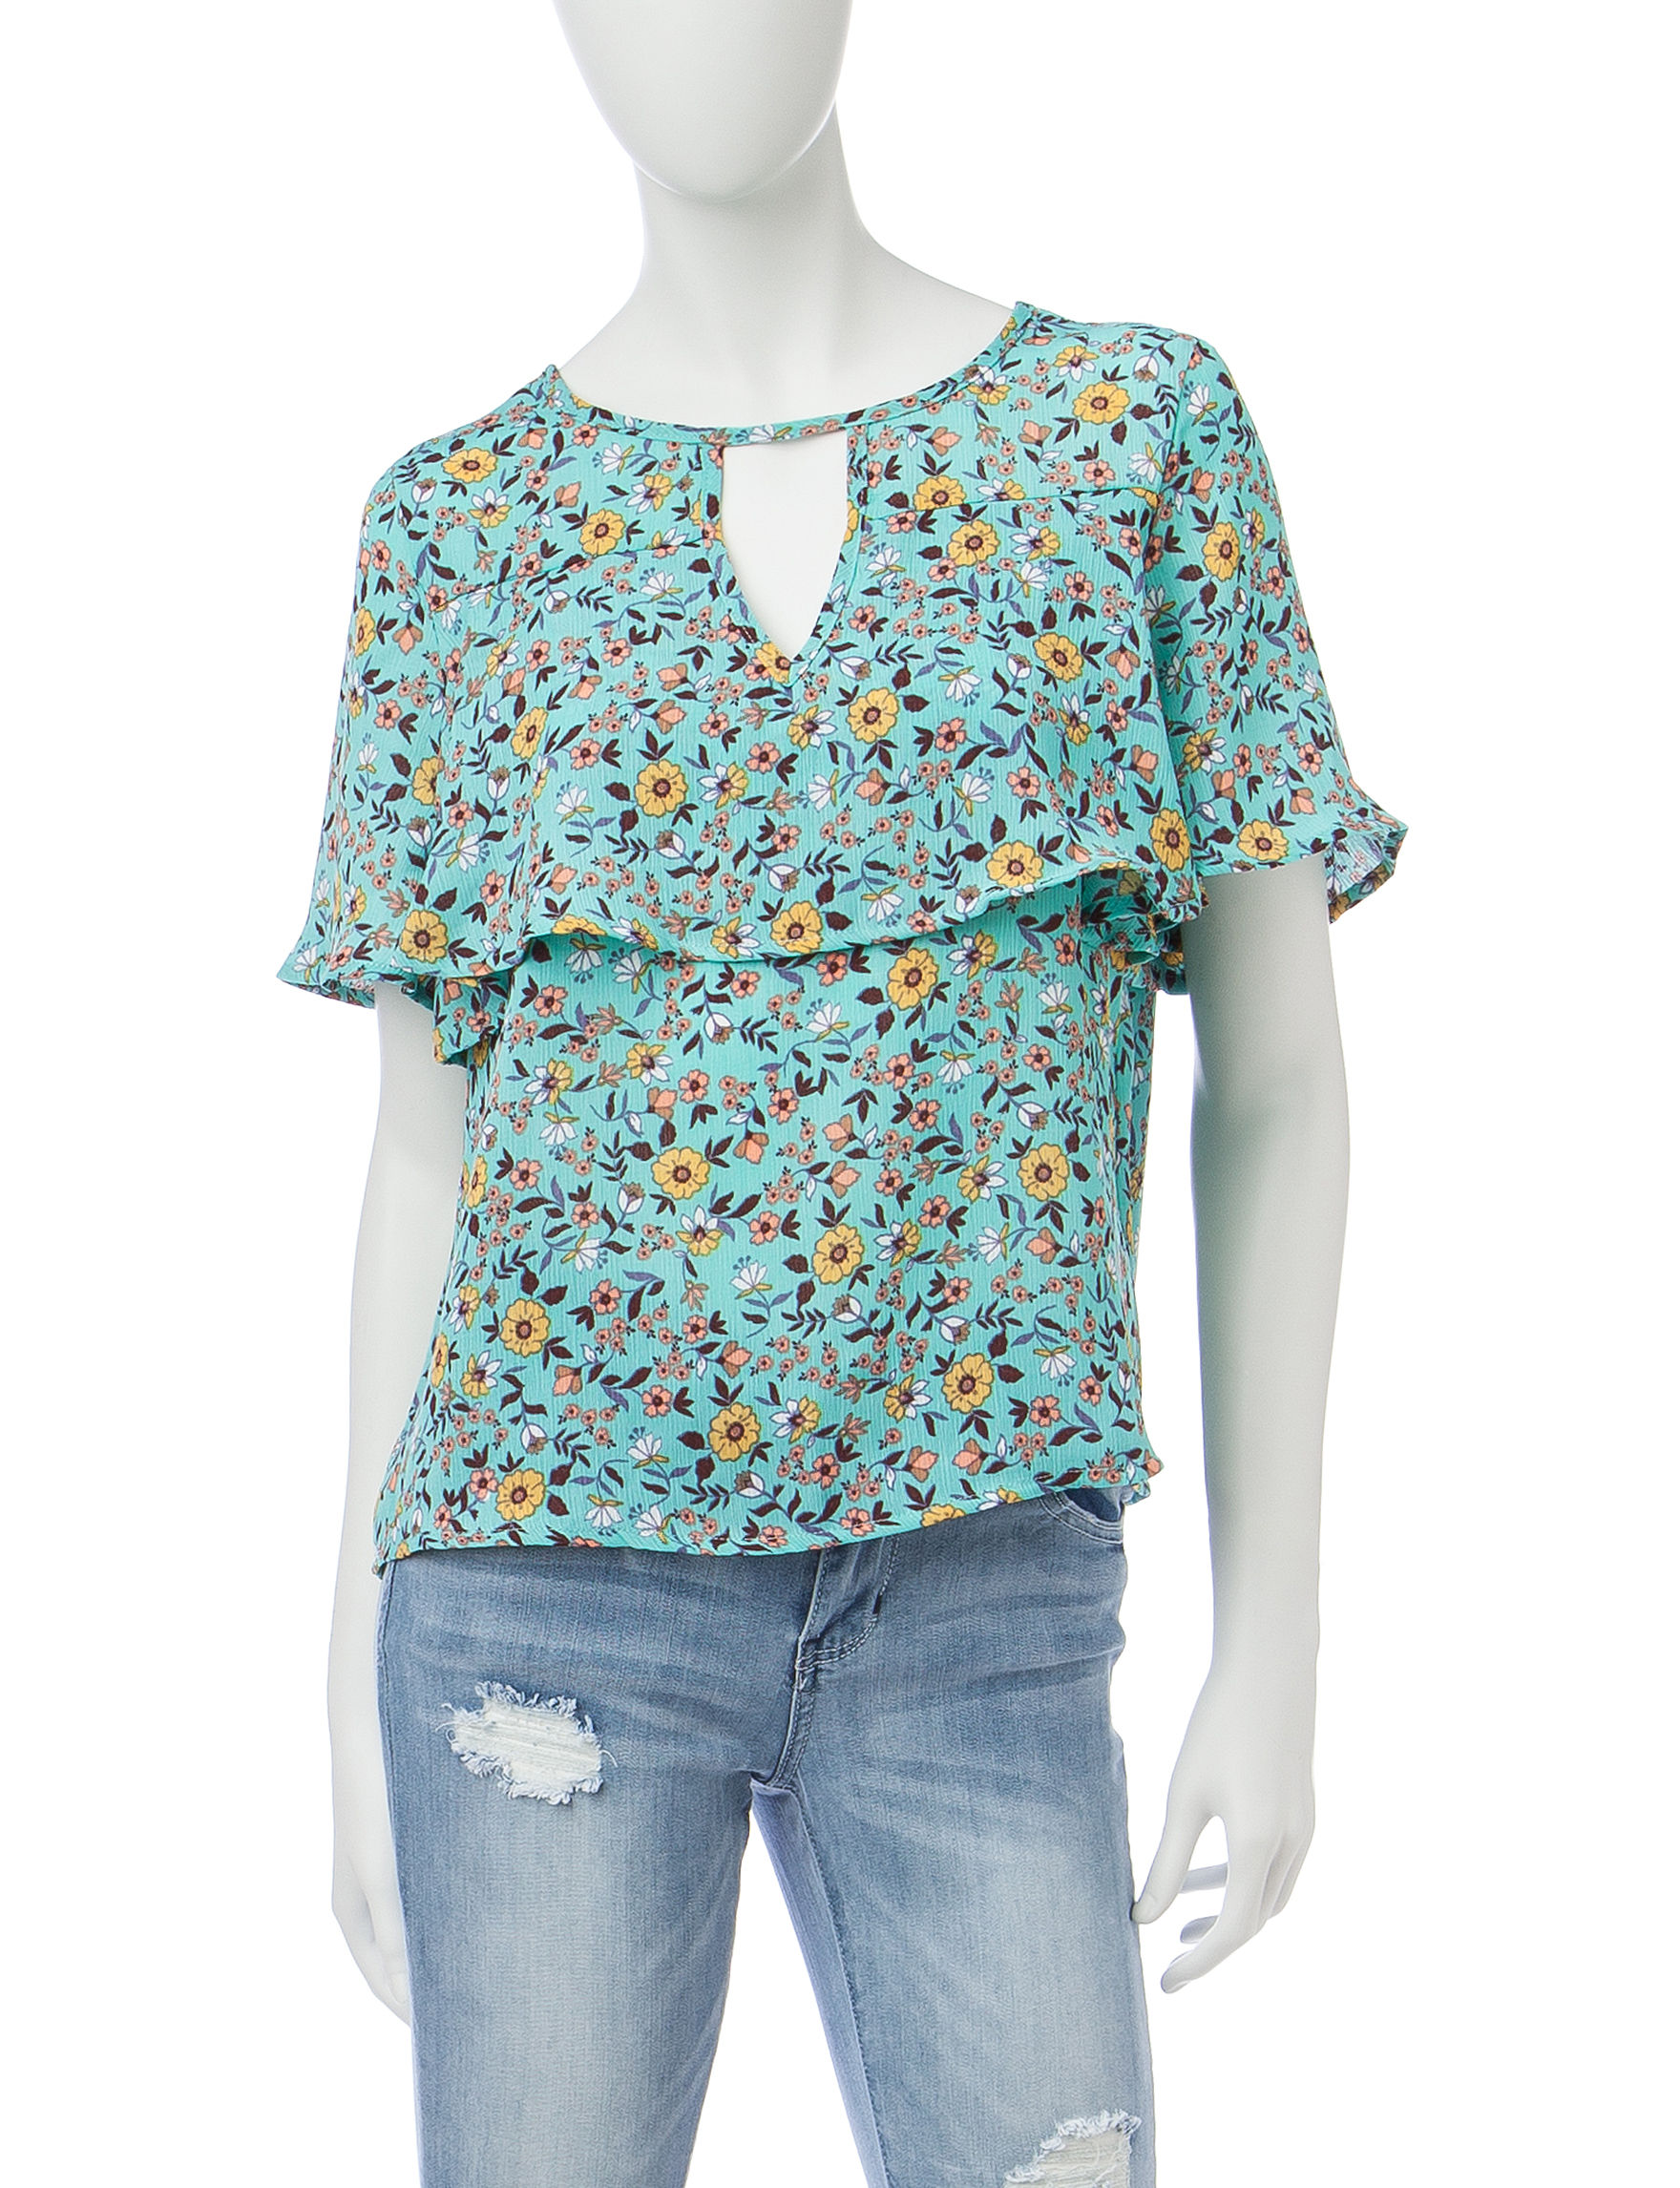 Wishful Park Teal Shirts & Blouses